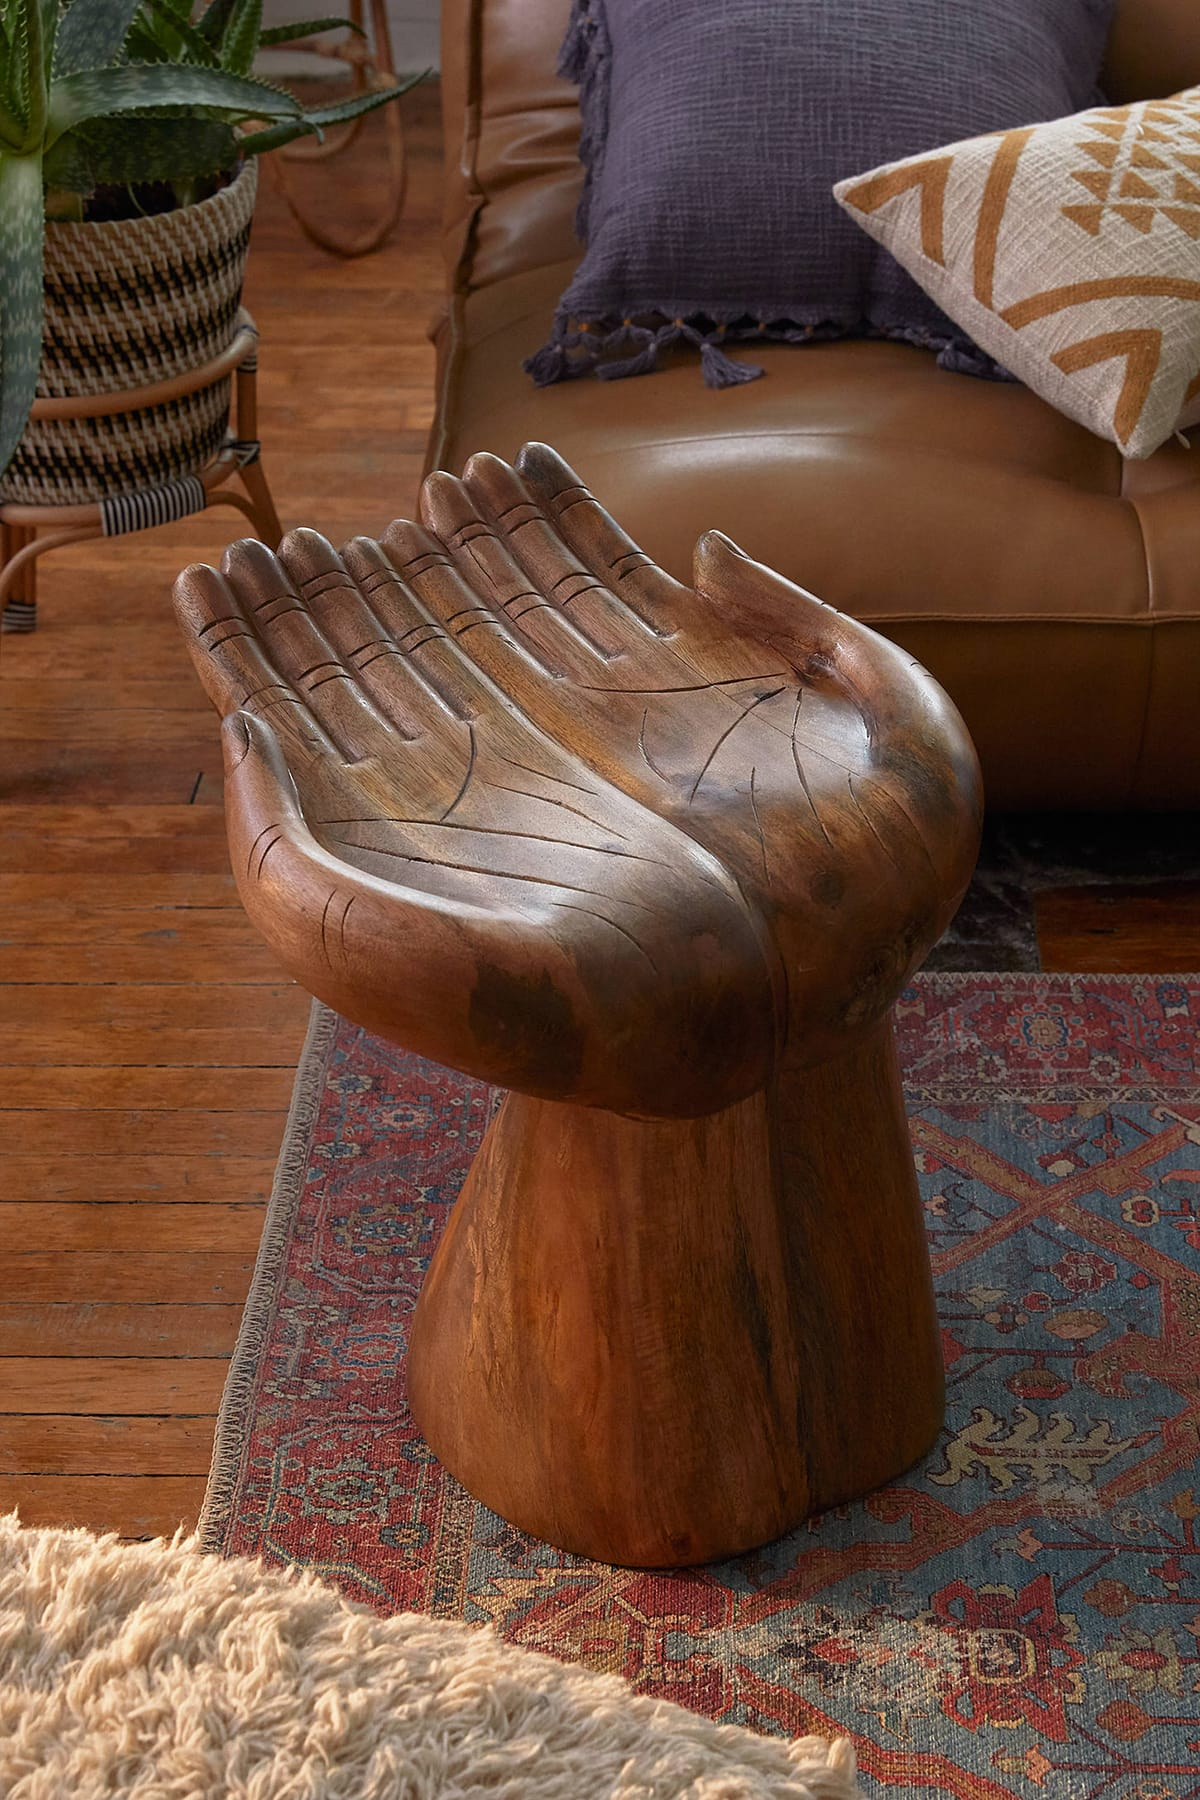 wooden hand stool